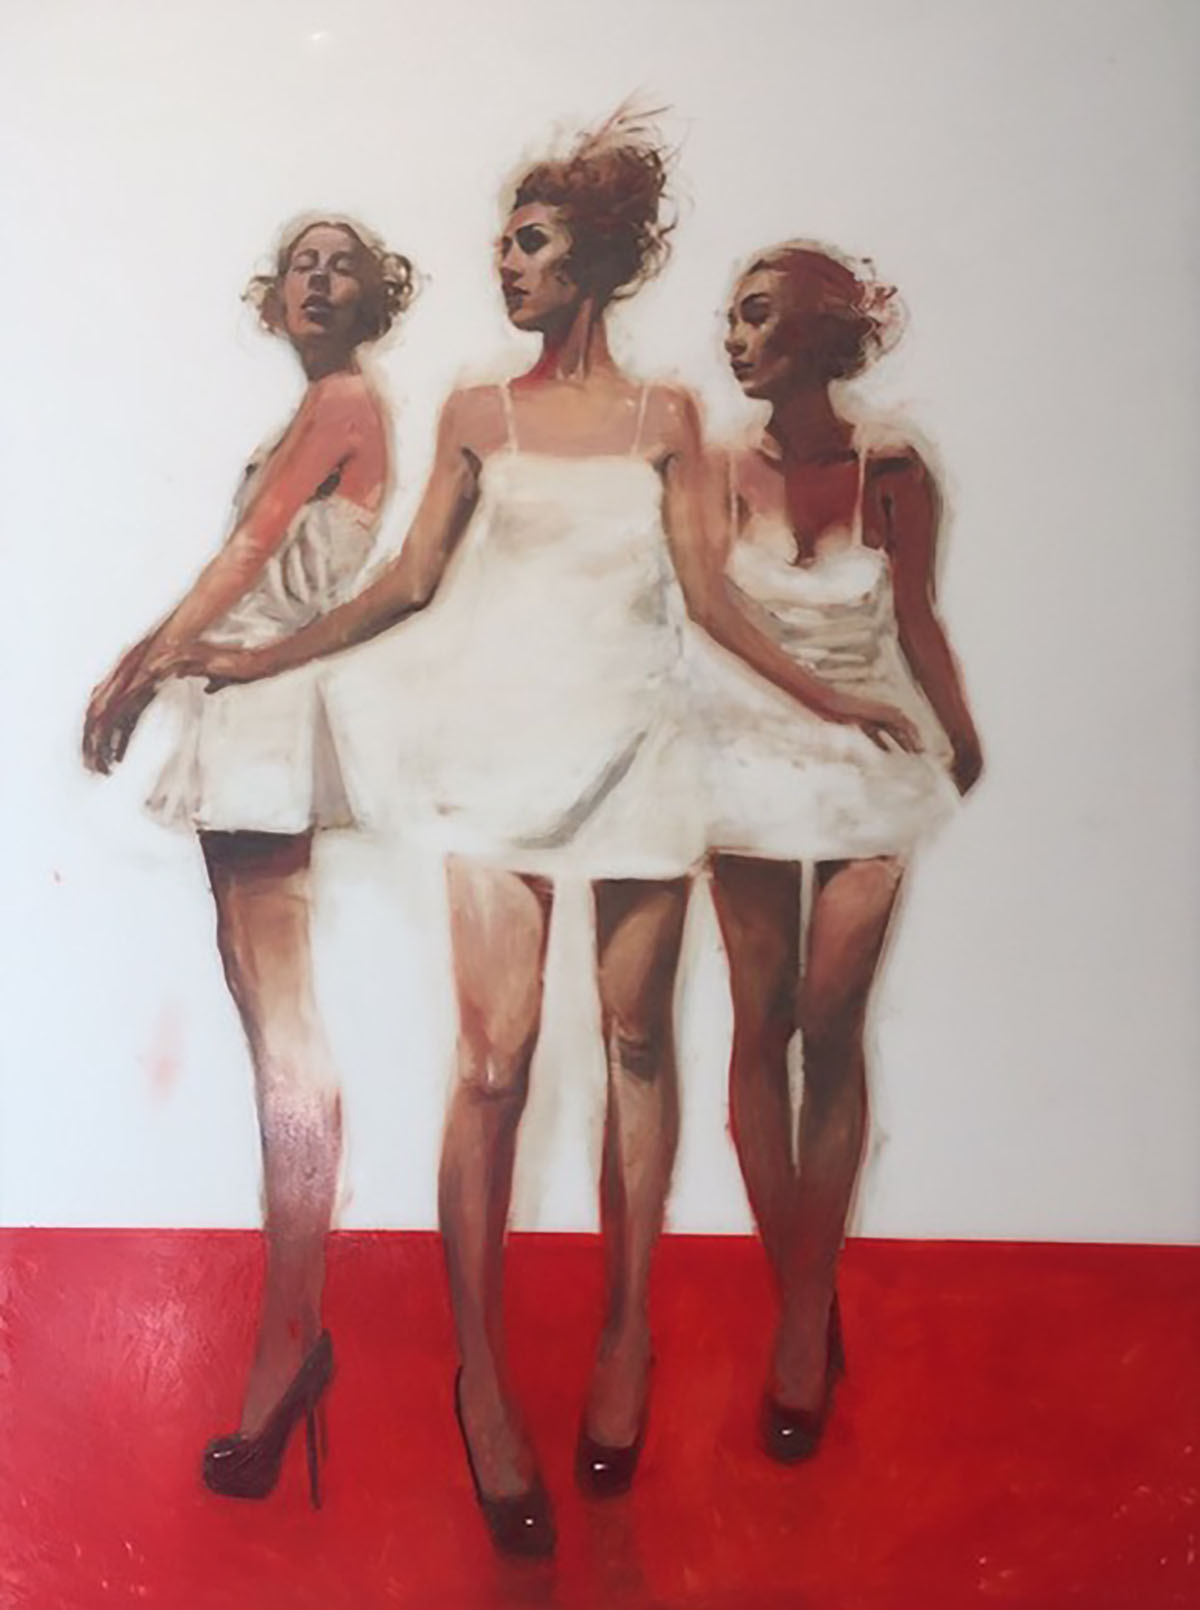 Michael Carson / Untitled, 50 x 39 inches / oil and resin on panel